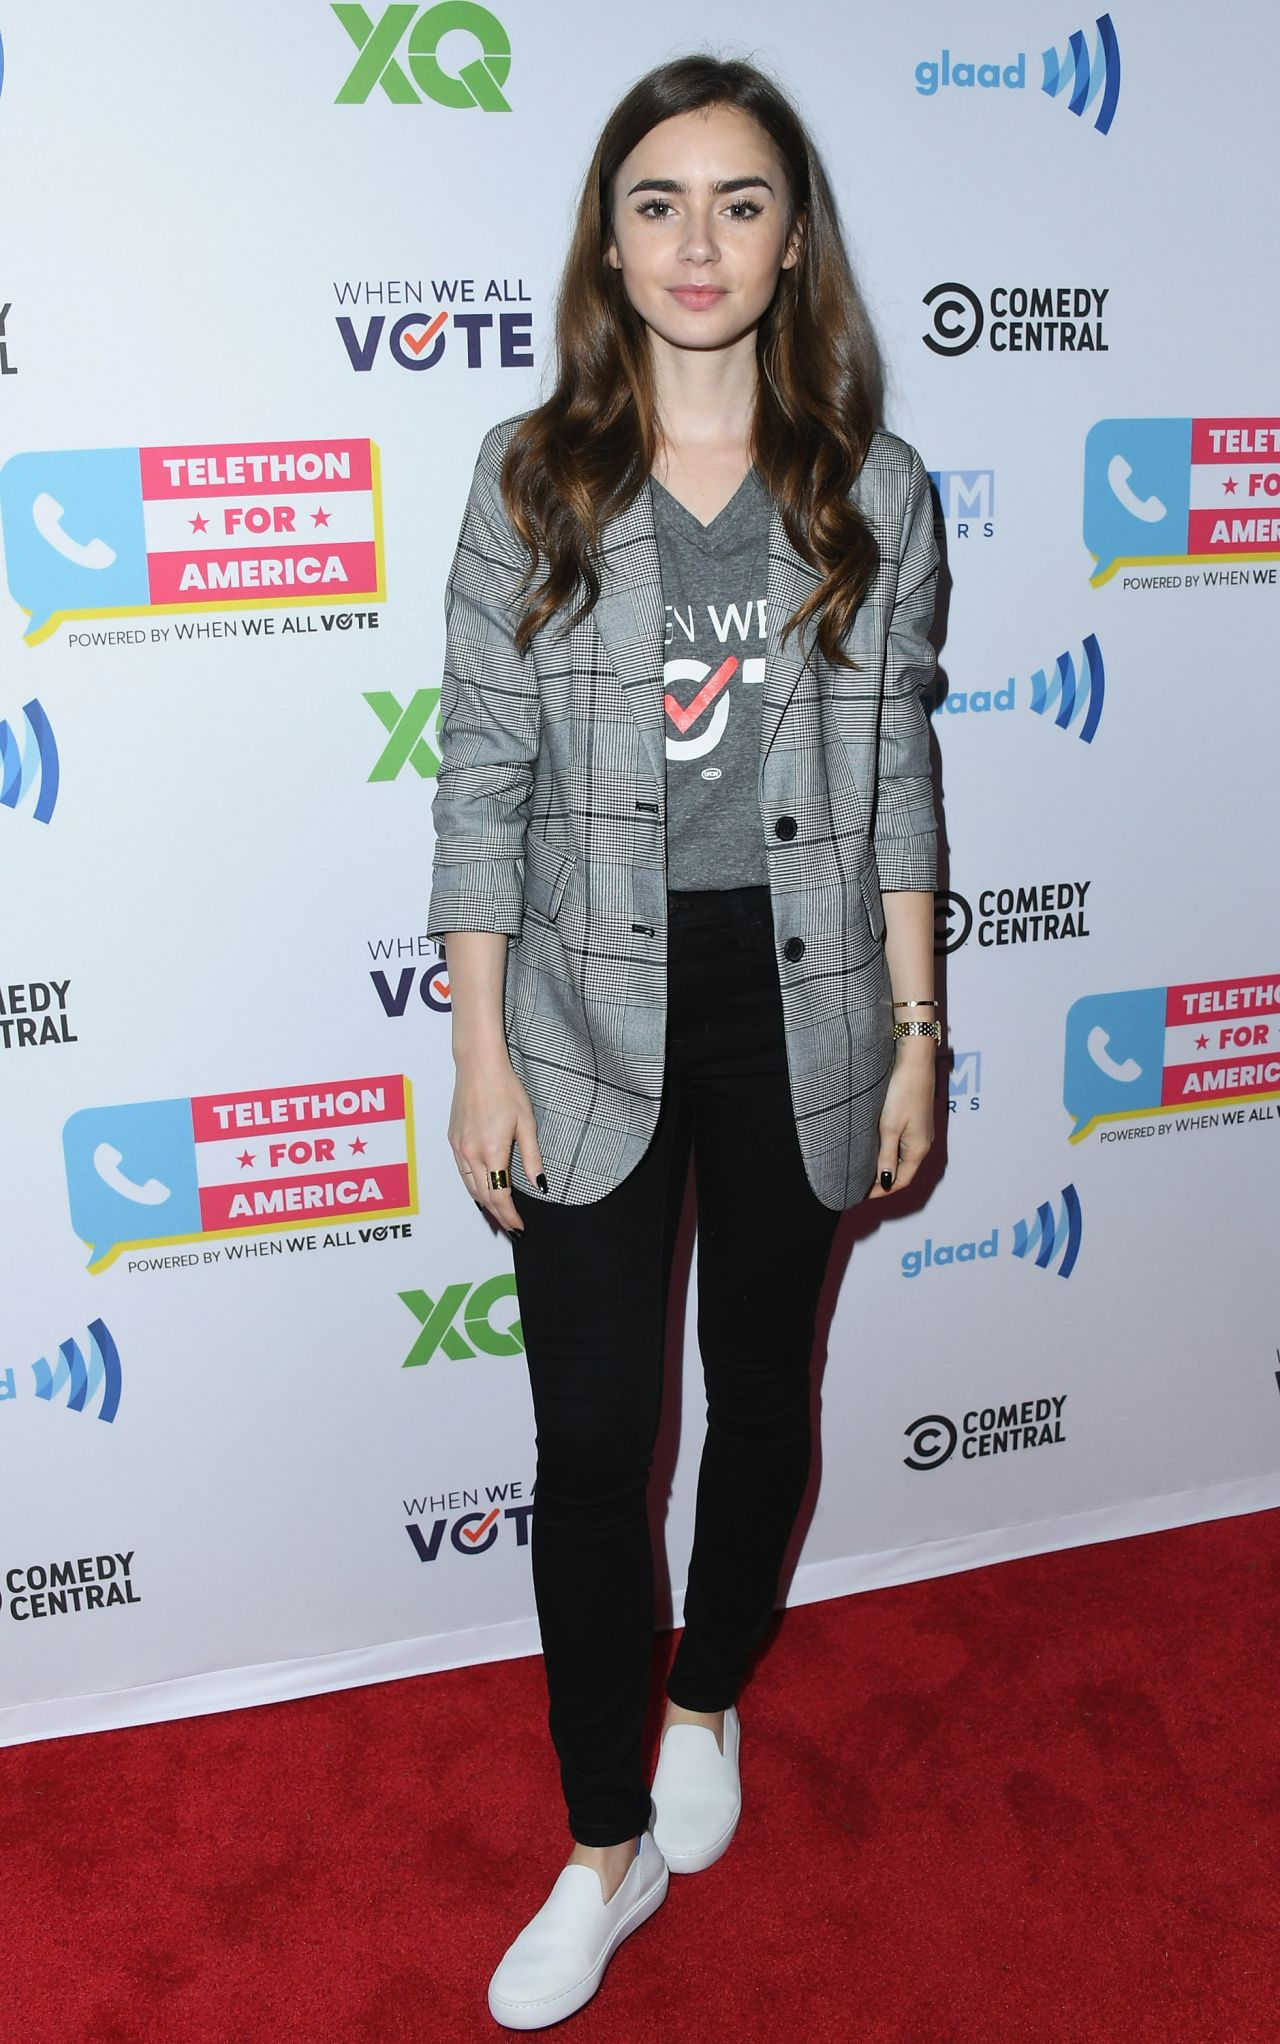 https://celebmafia.com/wp-content/uploads/2018/11/lily-collins-telethon-for-america-in-los-angeles-11-05-2018-2.jpg